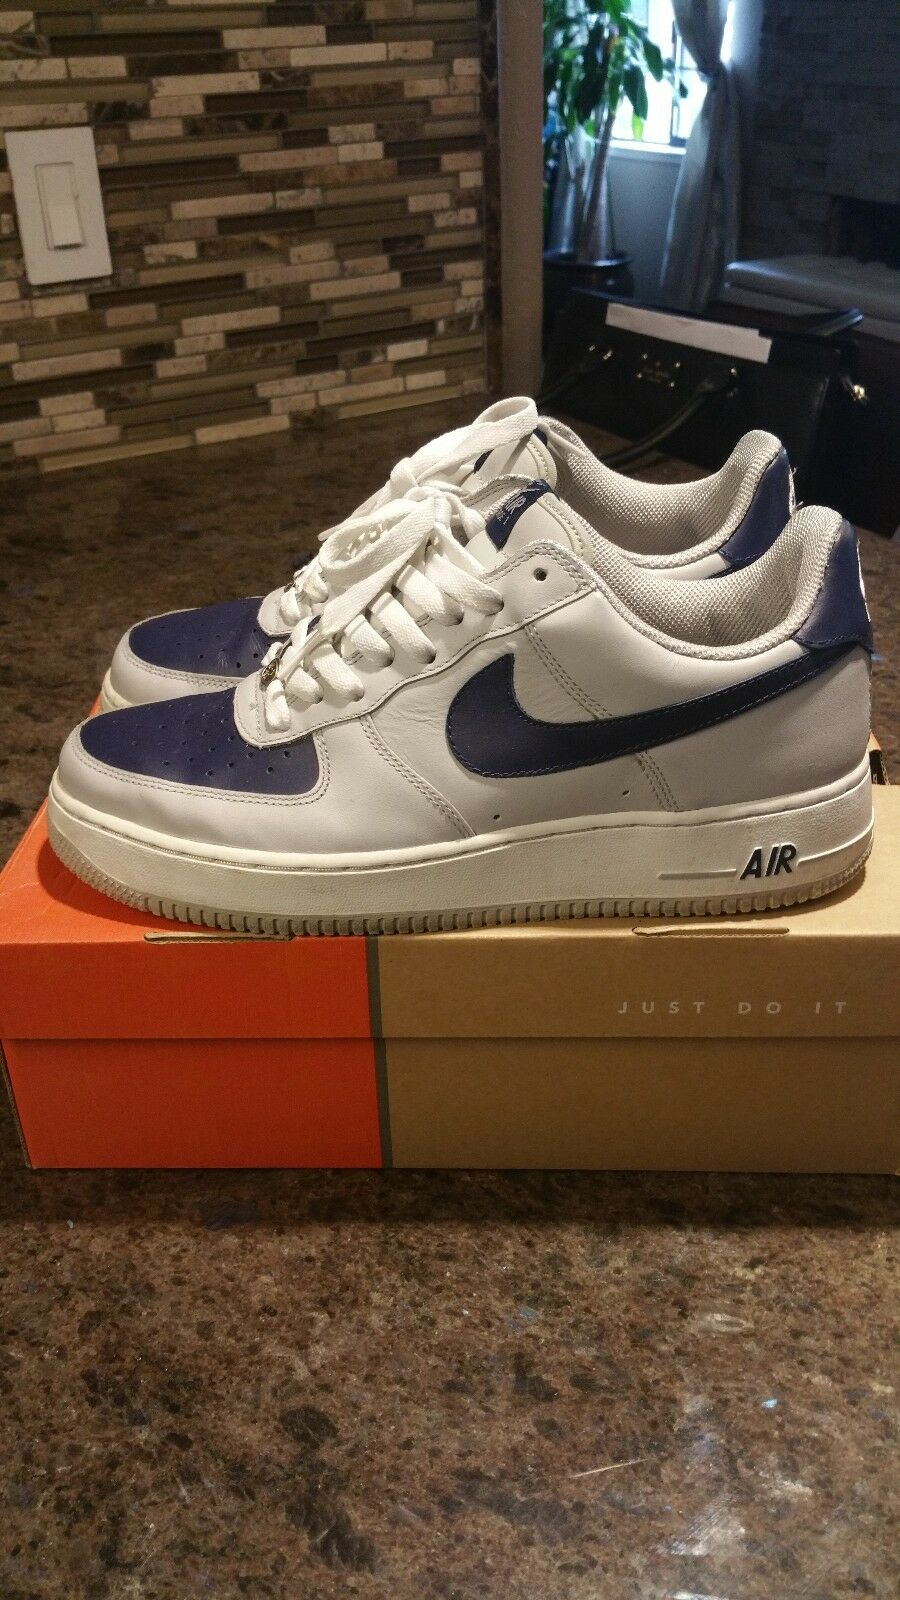 best-selling model of the brand Vintage Nike Air Force 1 Low Price reduction